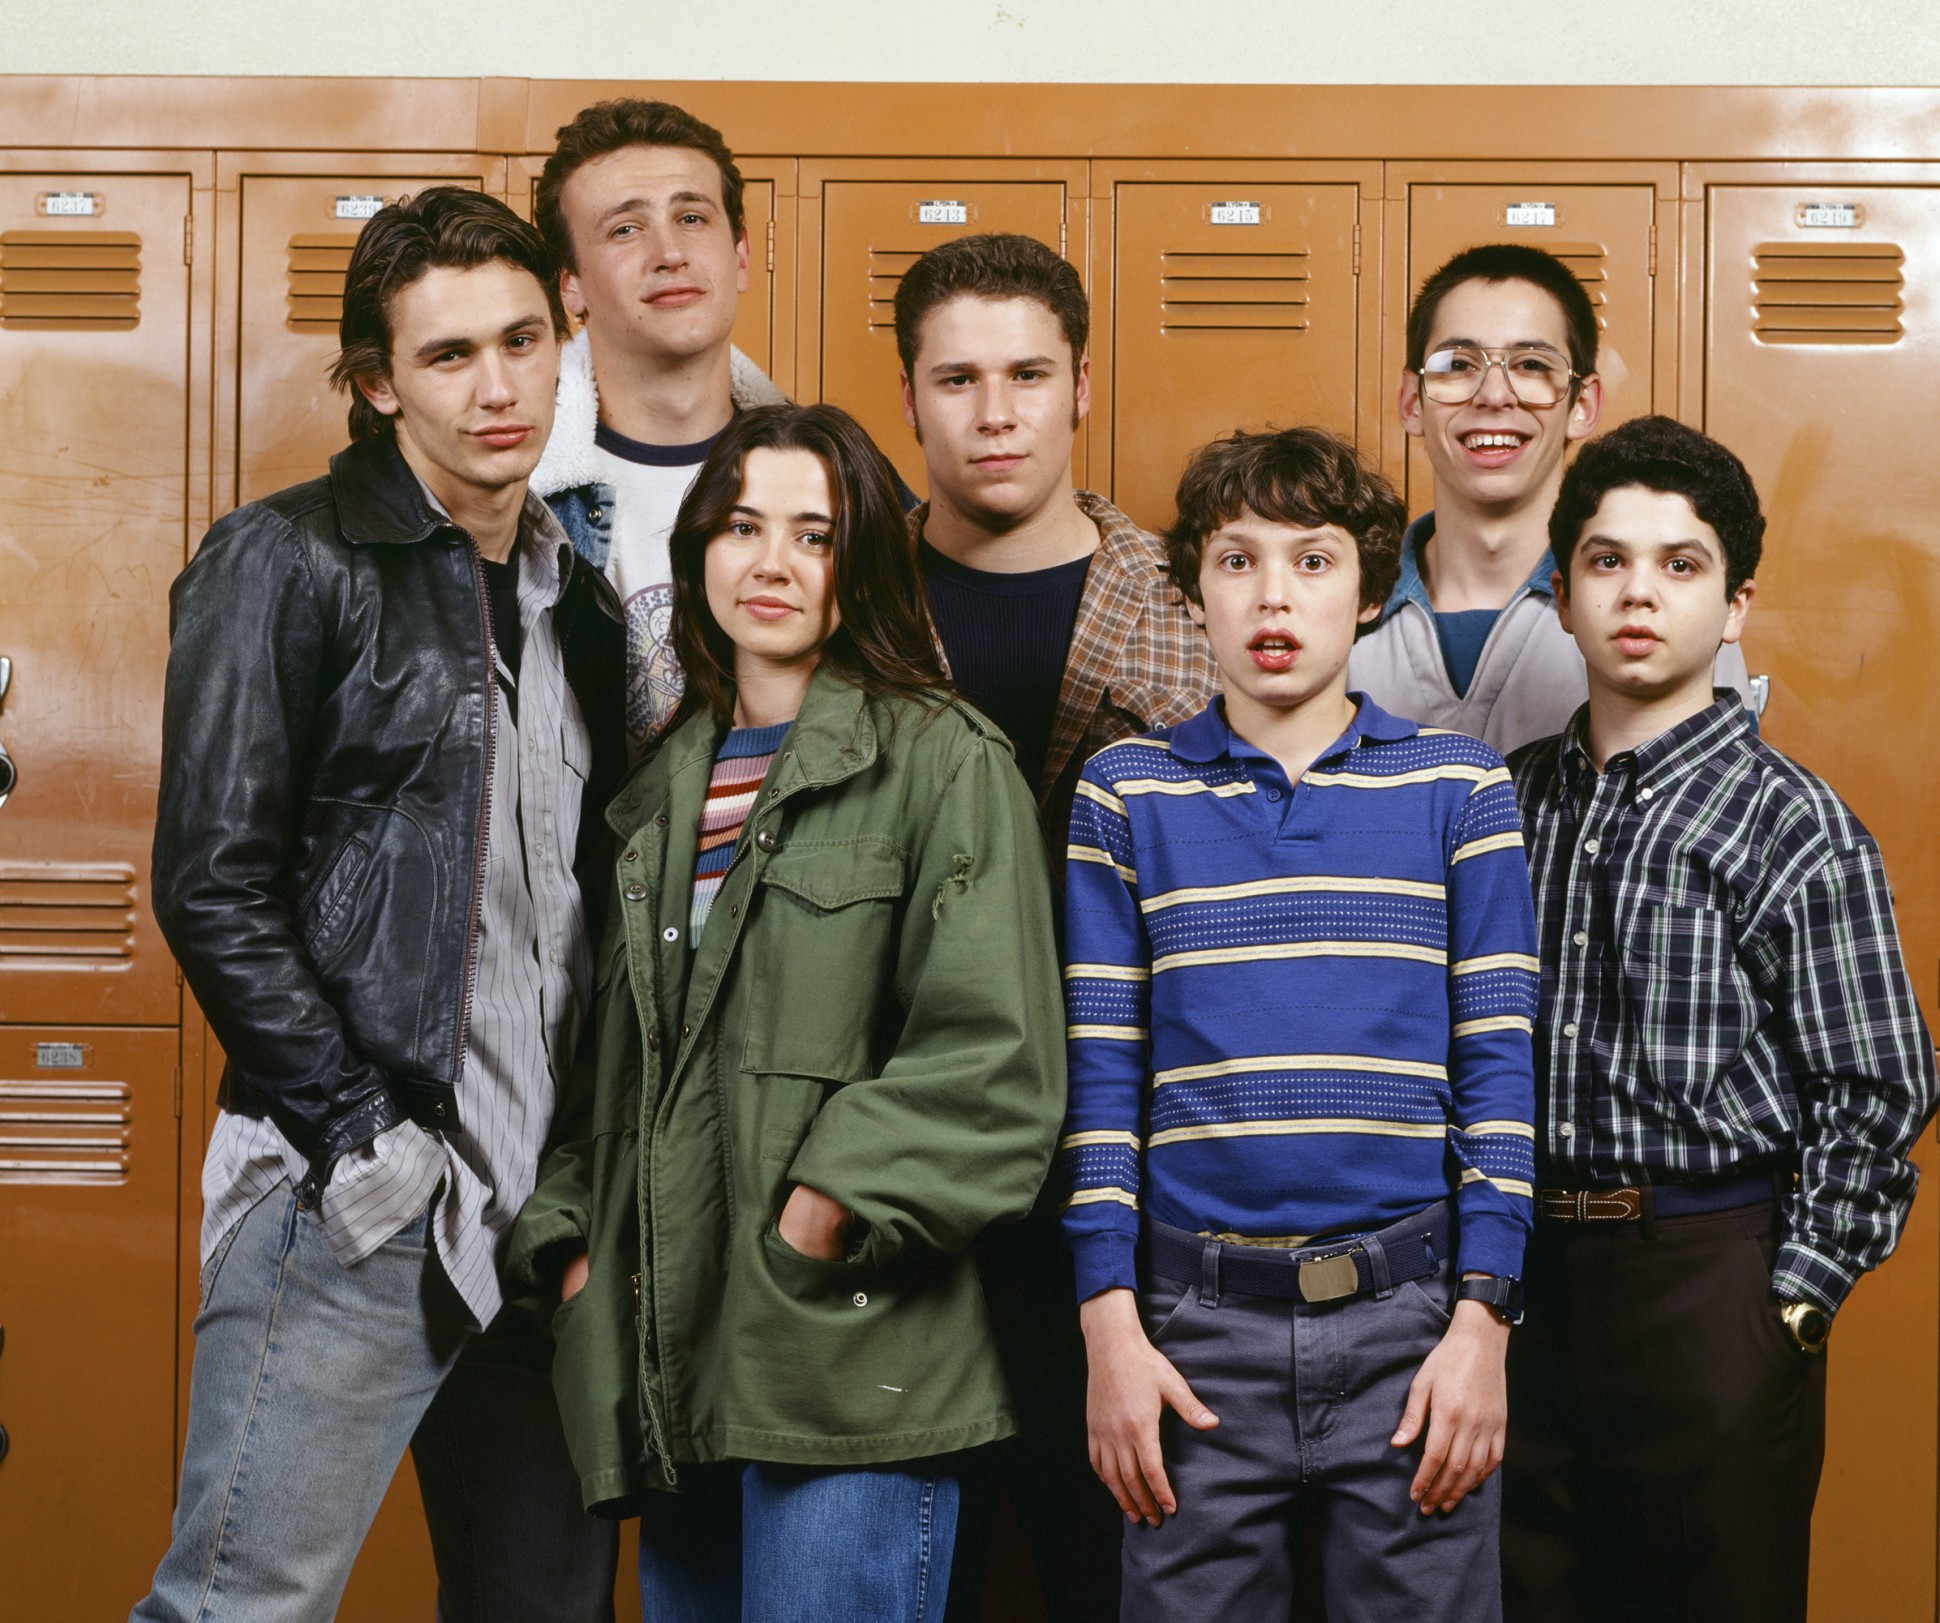 freaks-and-geeks-full-cast-e1419260207103-1940x1623